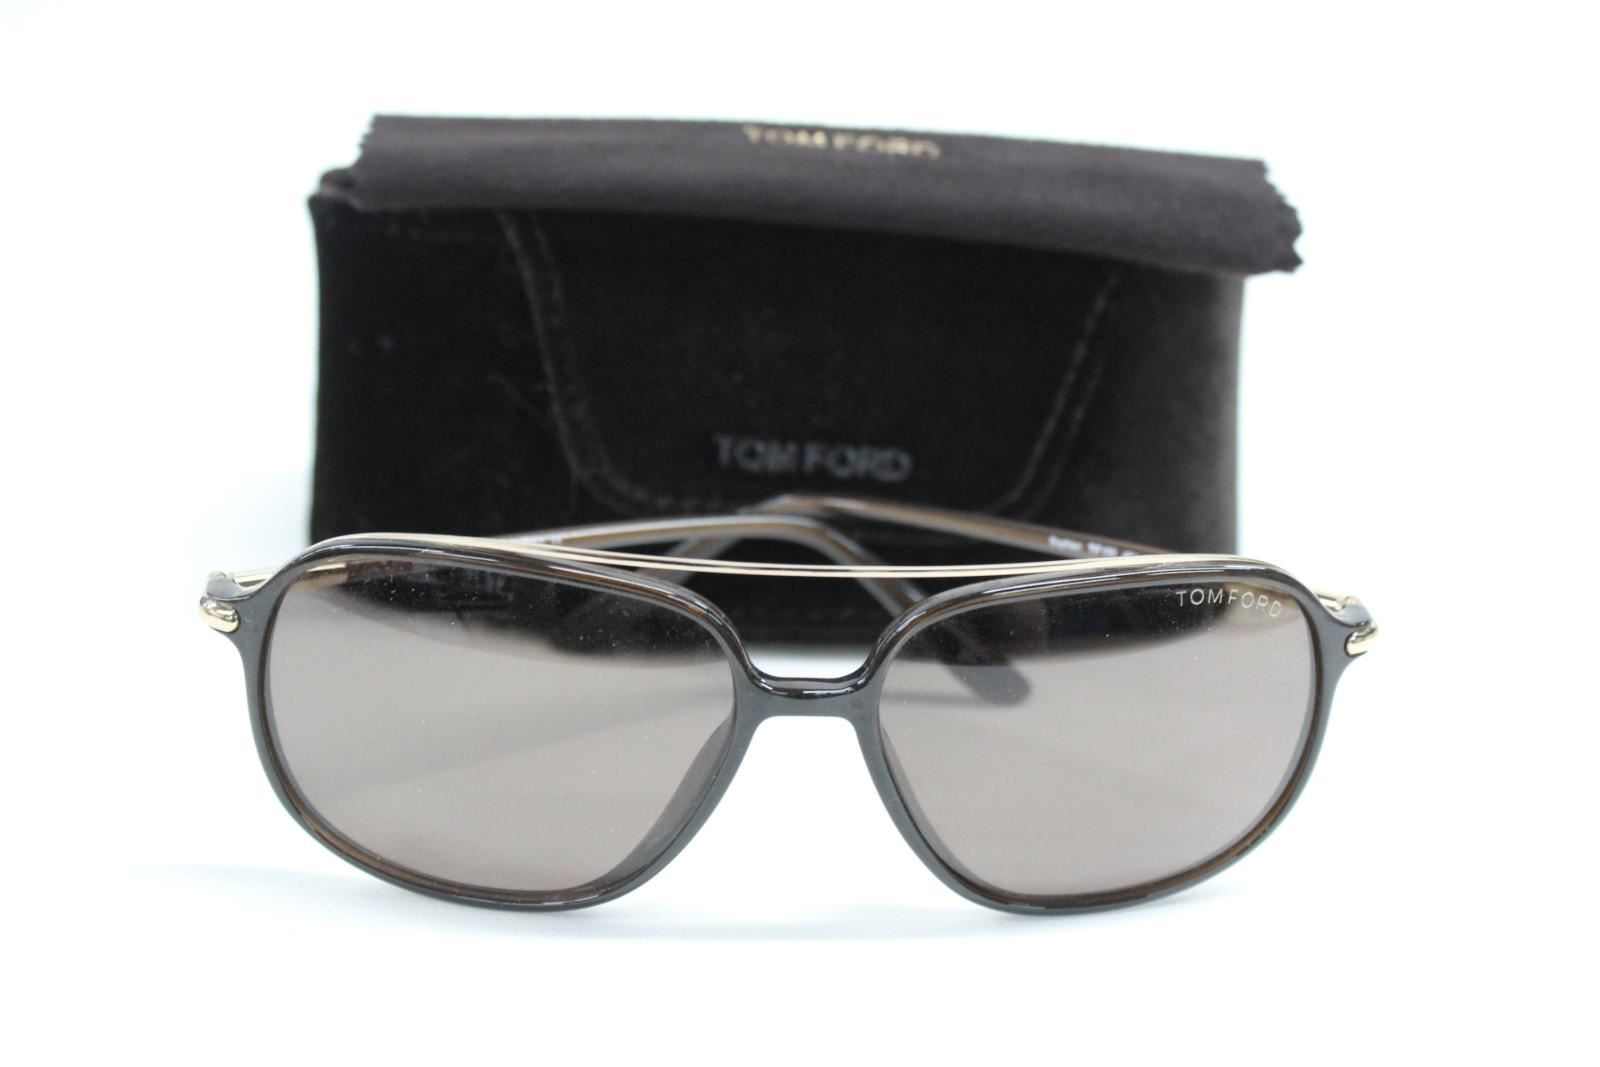 e547abad9546a TOM FORD TF 150 48J Sophien Brown Gradient Unisex Sunglasses 59-15 With  Case 1 of 12Only 1 available ...